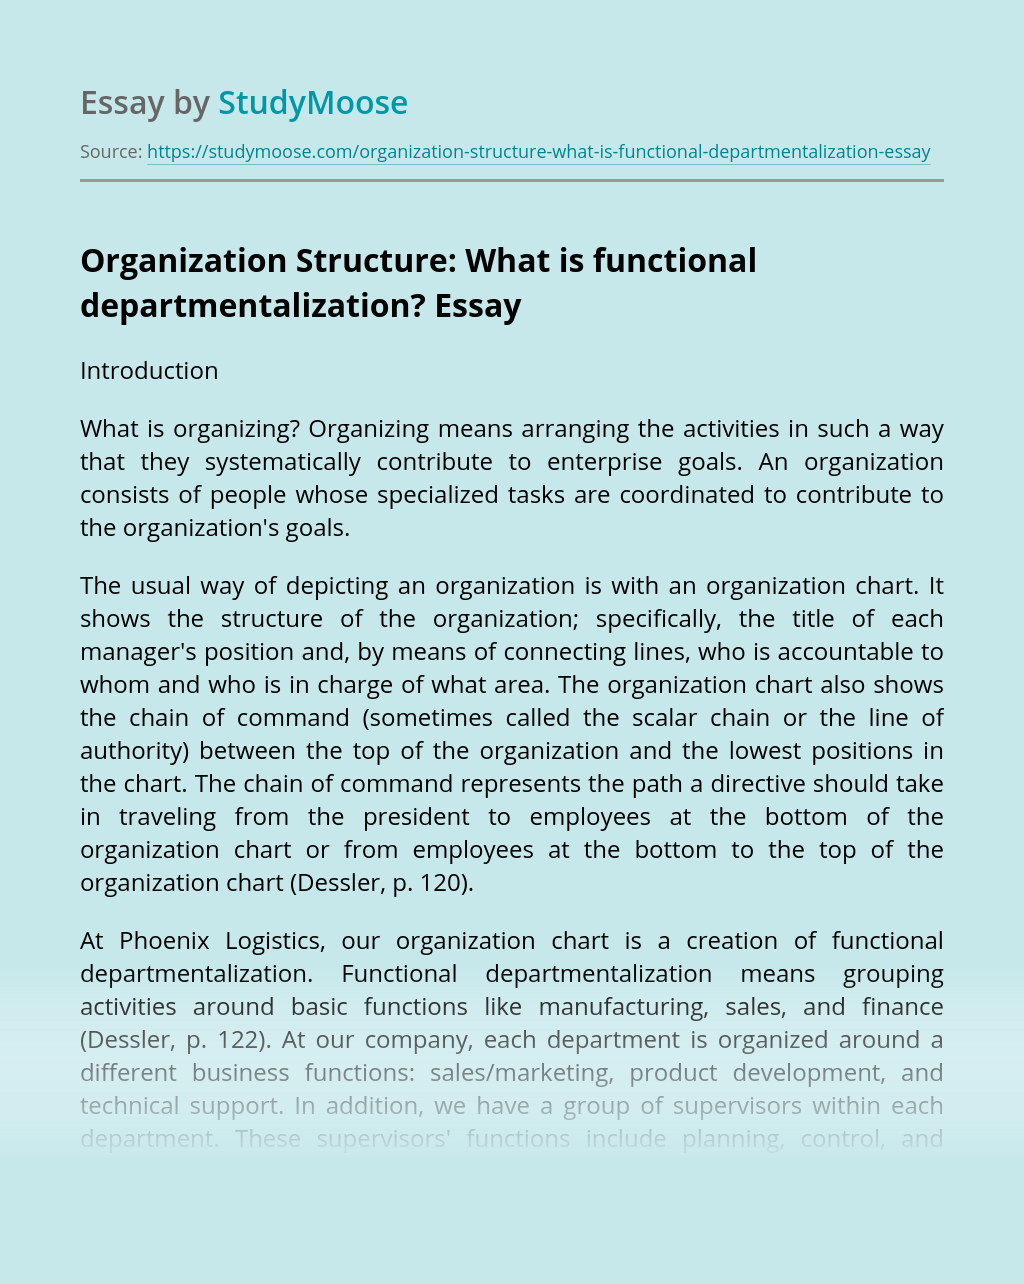 Organization Structure: What is functional departmentalization?